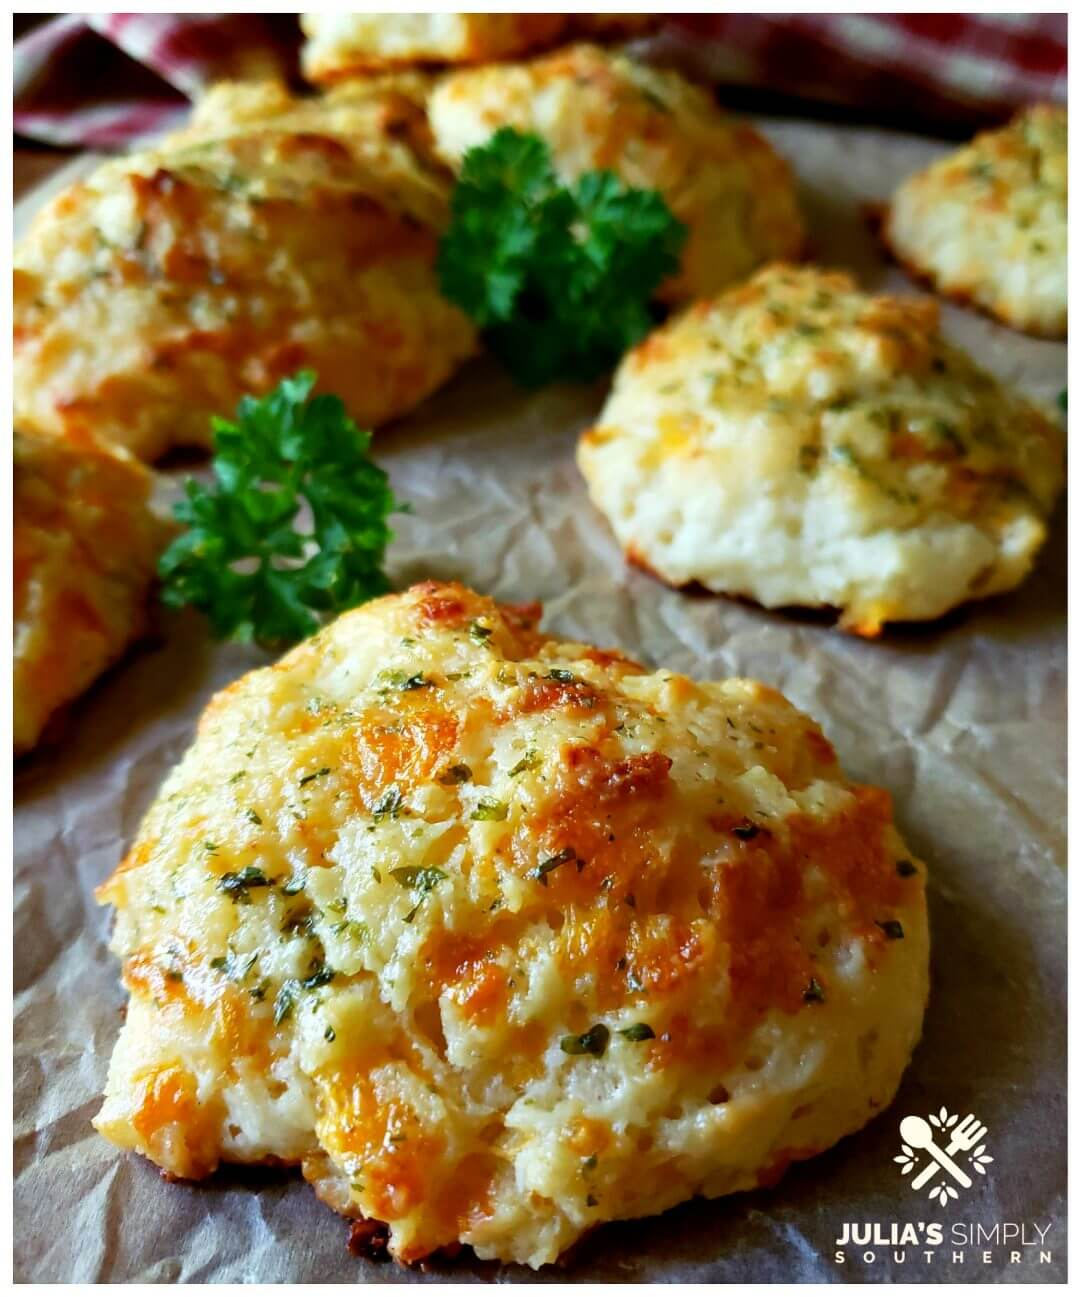 Garlic cheese drop biscuits brushed with an herb butter on a sheet of brown parchment with a few sprigs of parsley